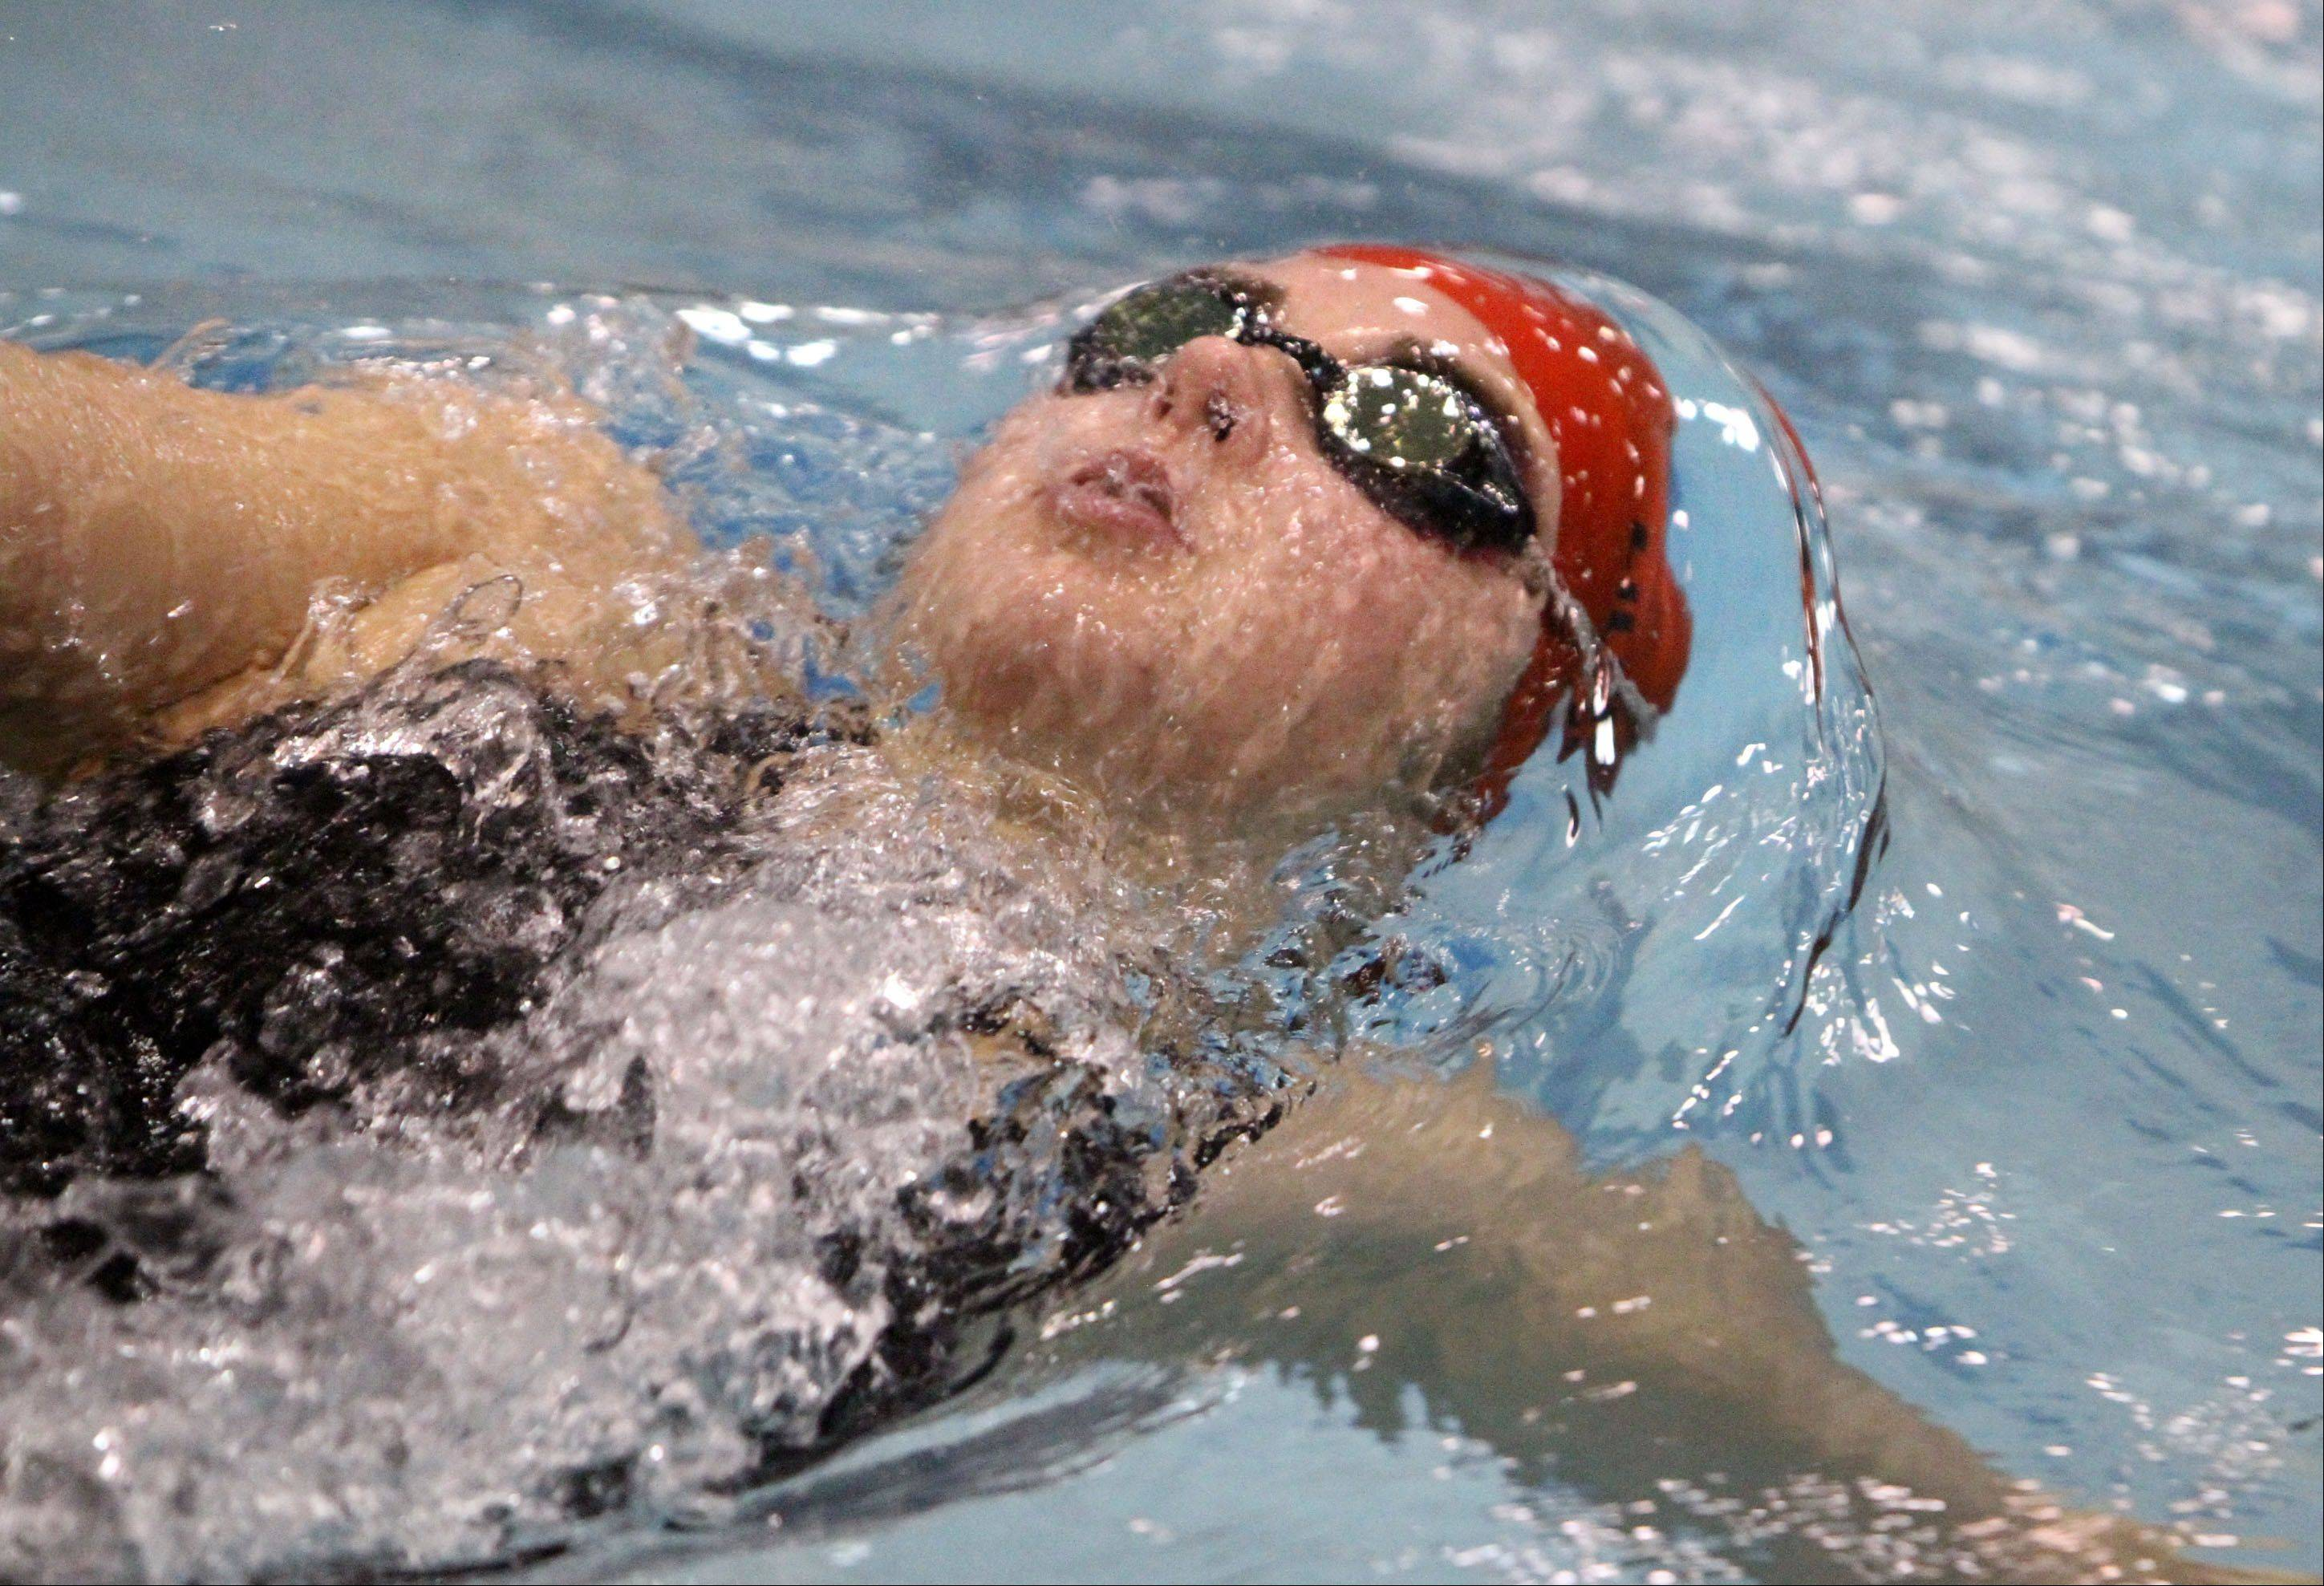 Hinsdale Central's Hannah Lillioja competes in the 100-yard backstroke at the state final preliminaries Friday.